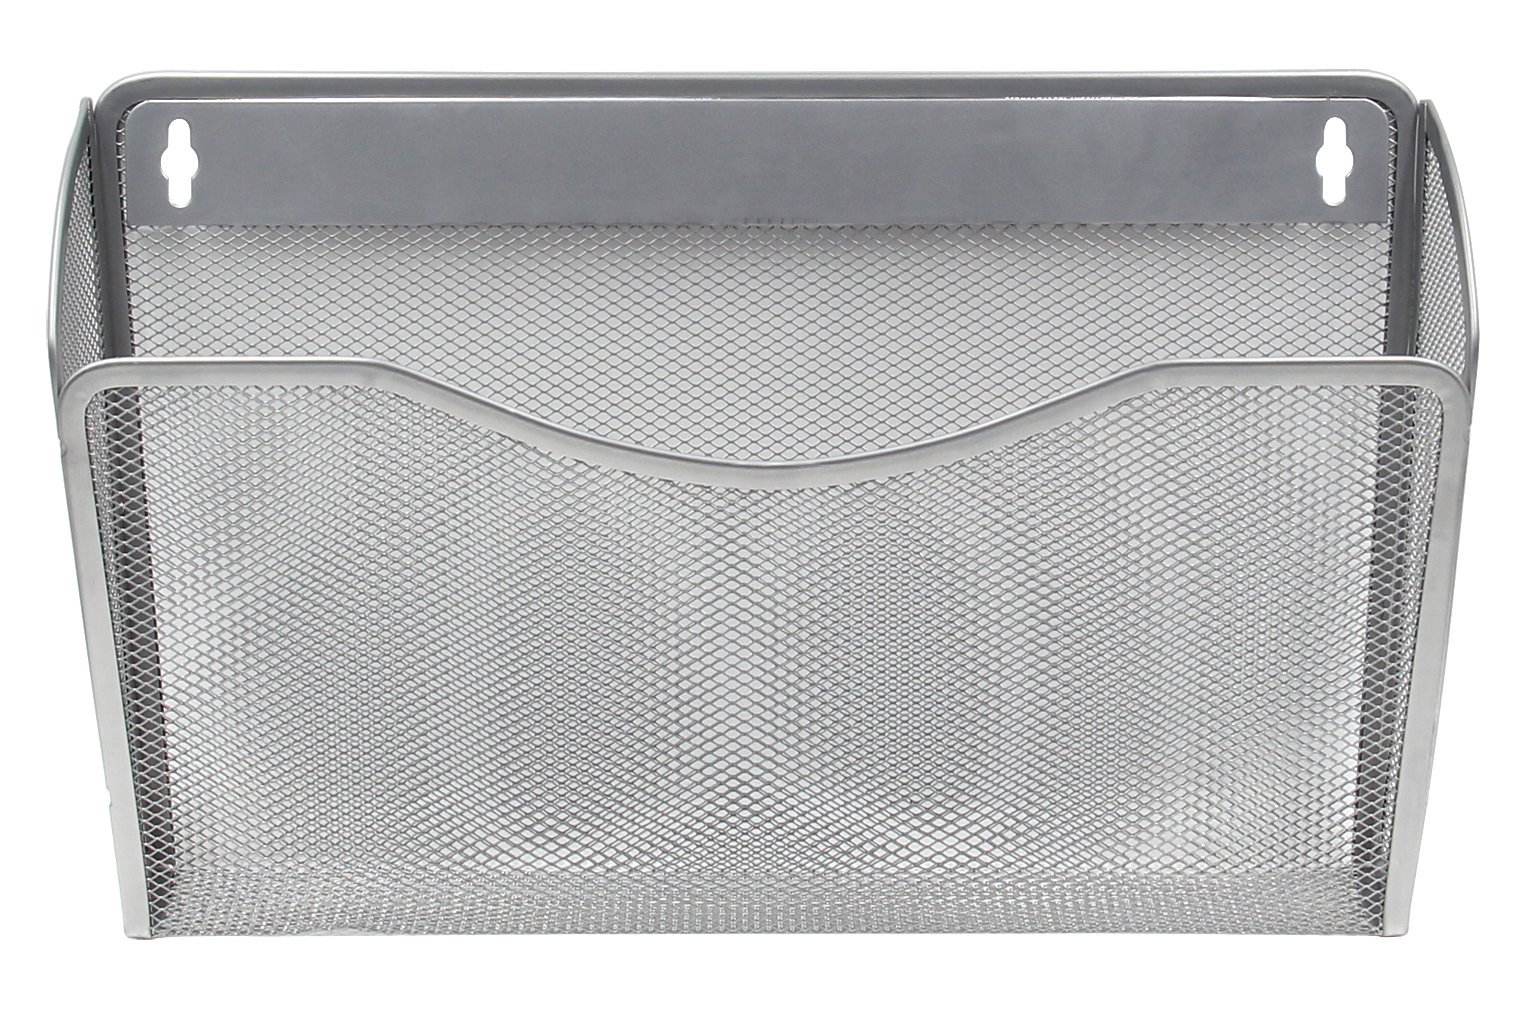 EasyPAG Mesh Collection Wall File Pocket Holder Organizer Metal for Office, 3 Pack,Silver by EasyPag (Image #3)